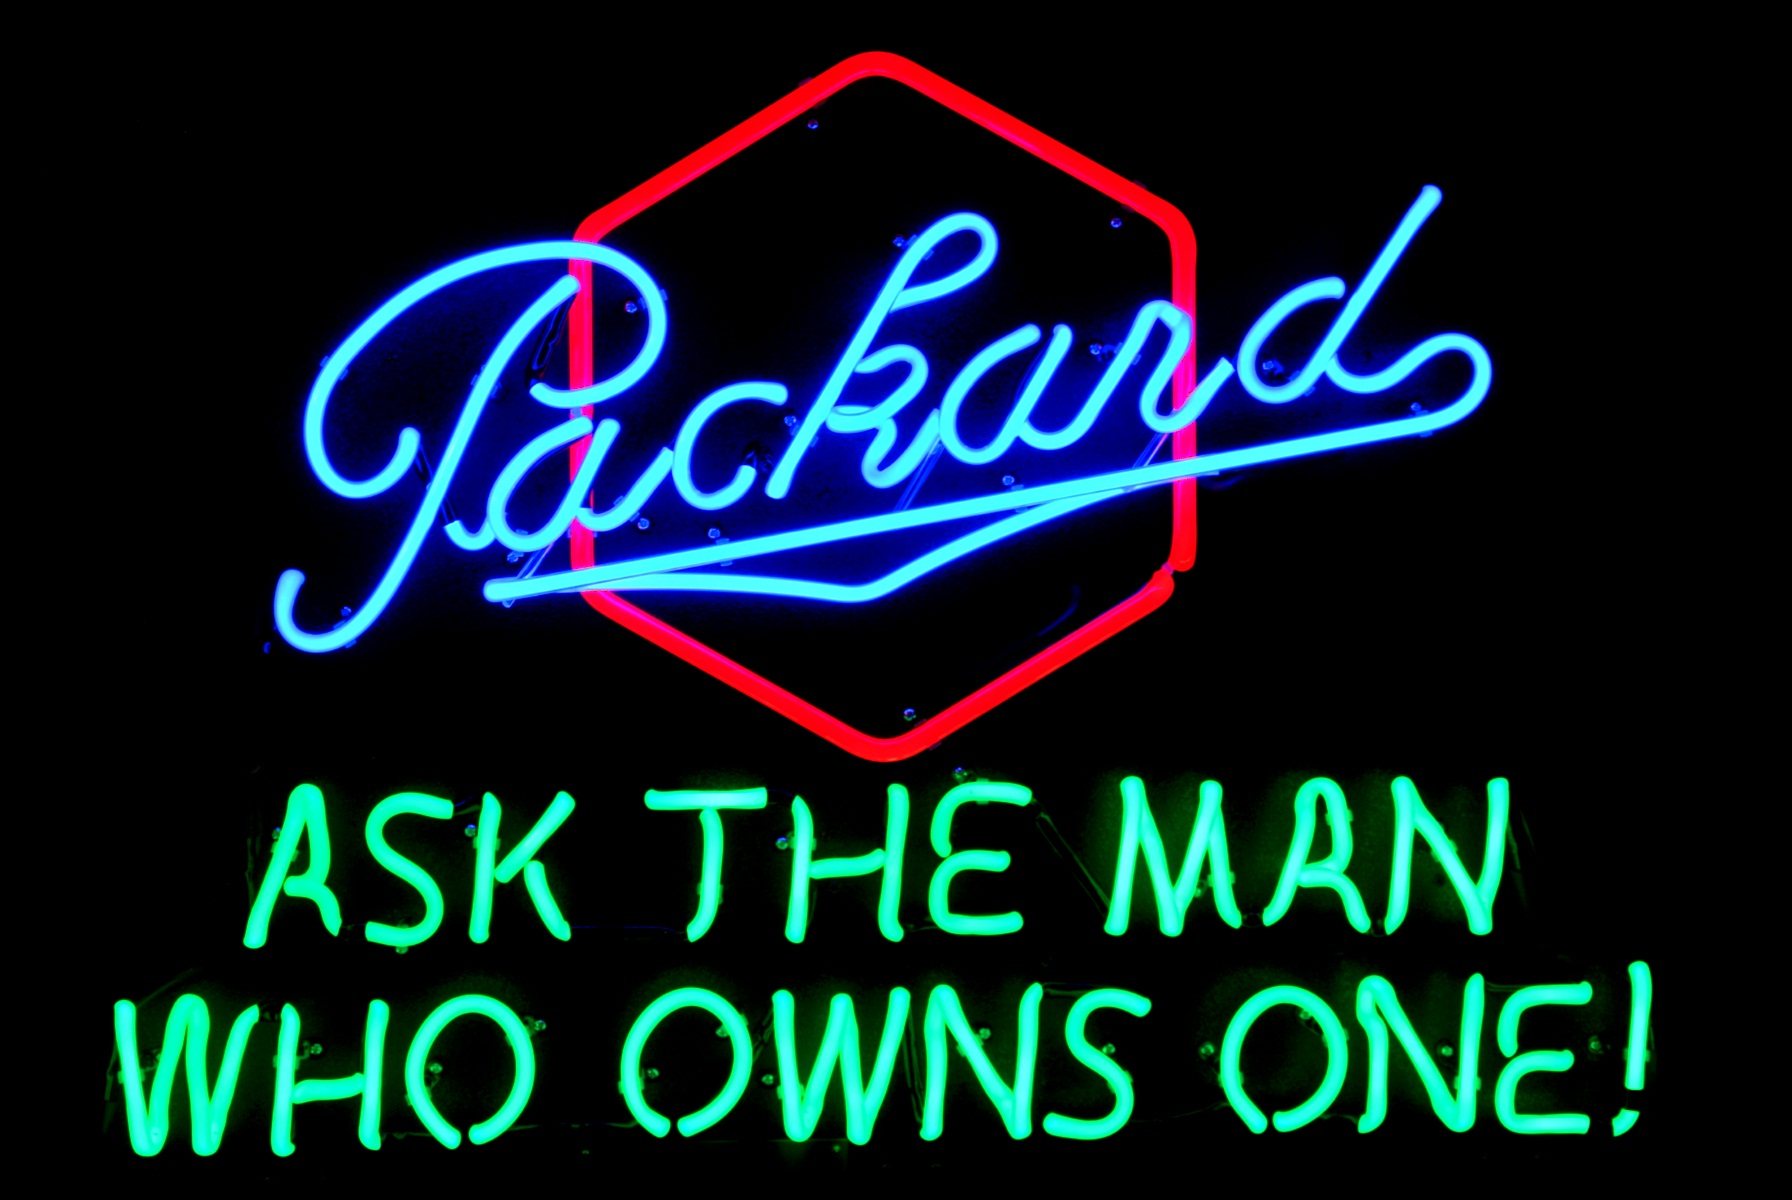 Packard ASK THE MAN WHO OWNS ONE! Dealership Neon Sign by John Barton - former Packard New Car Dealer - BartonNeonMagic.com